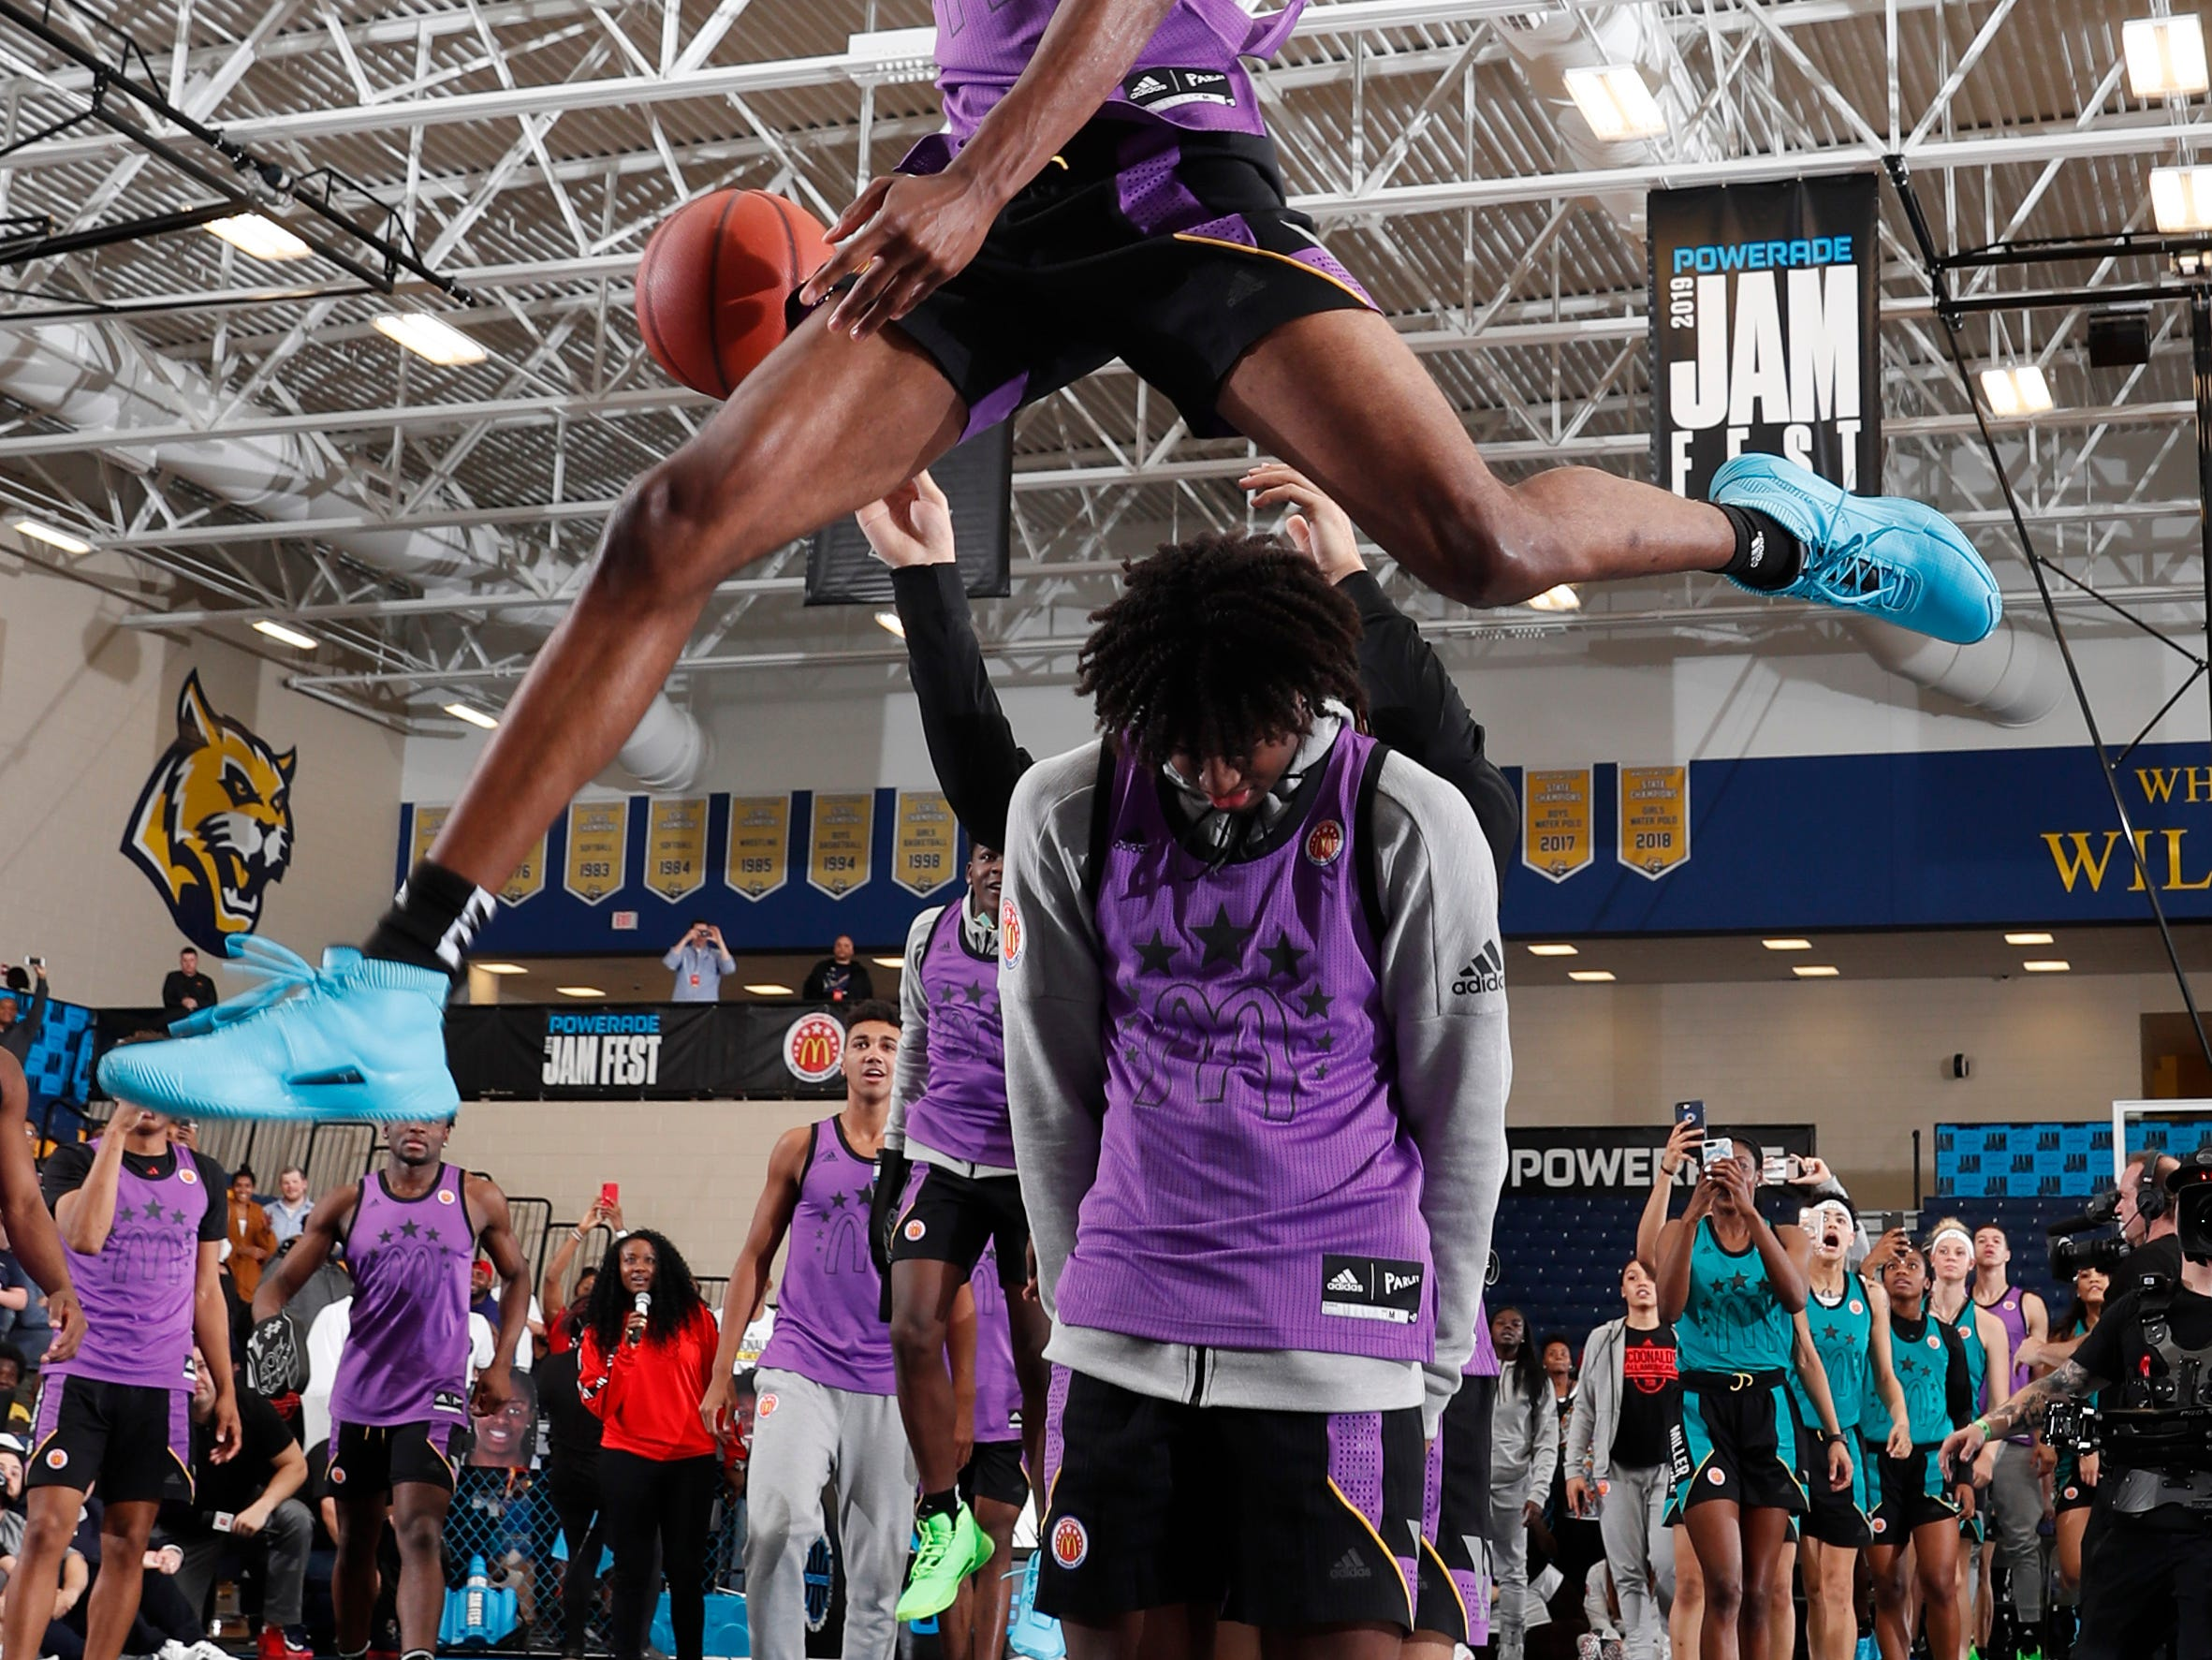 Mar 25, 2019; Marietta, GA, USA; McDonalds High School All American forward Scottie Lewis dunks during the Powerade Jamfest dunk competition at Wheeler High School. Mandatory Credit: Brian Spurlock-USA TODAY Sports